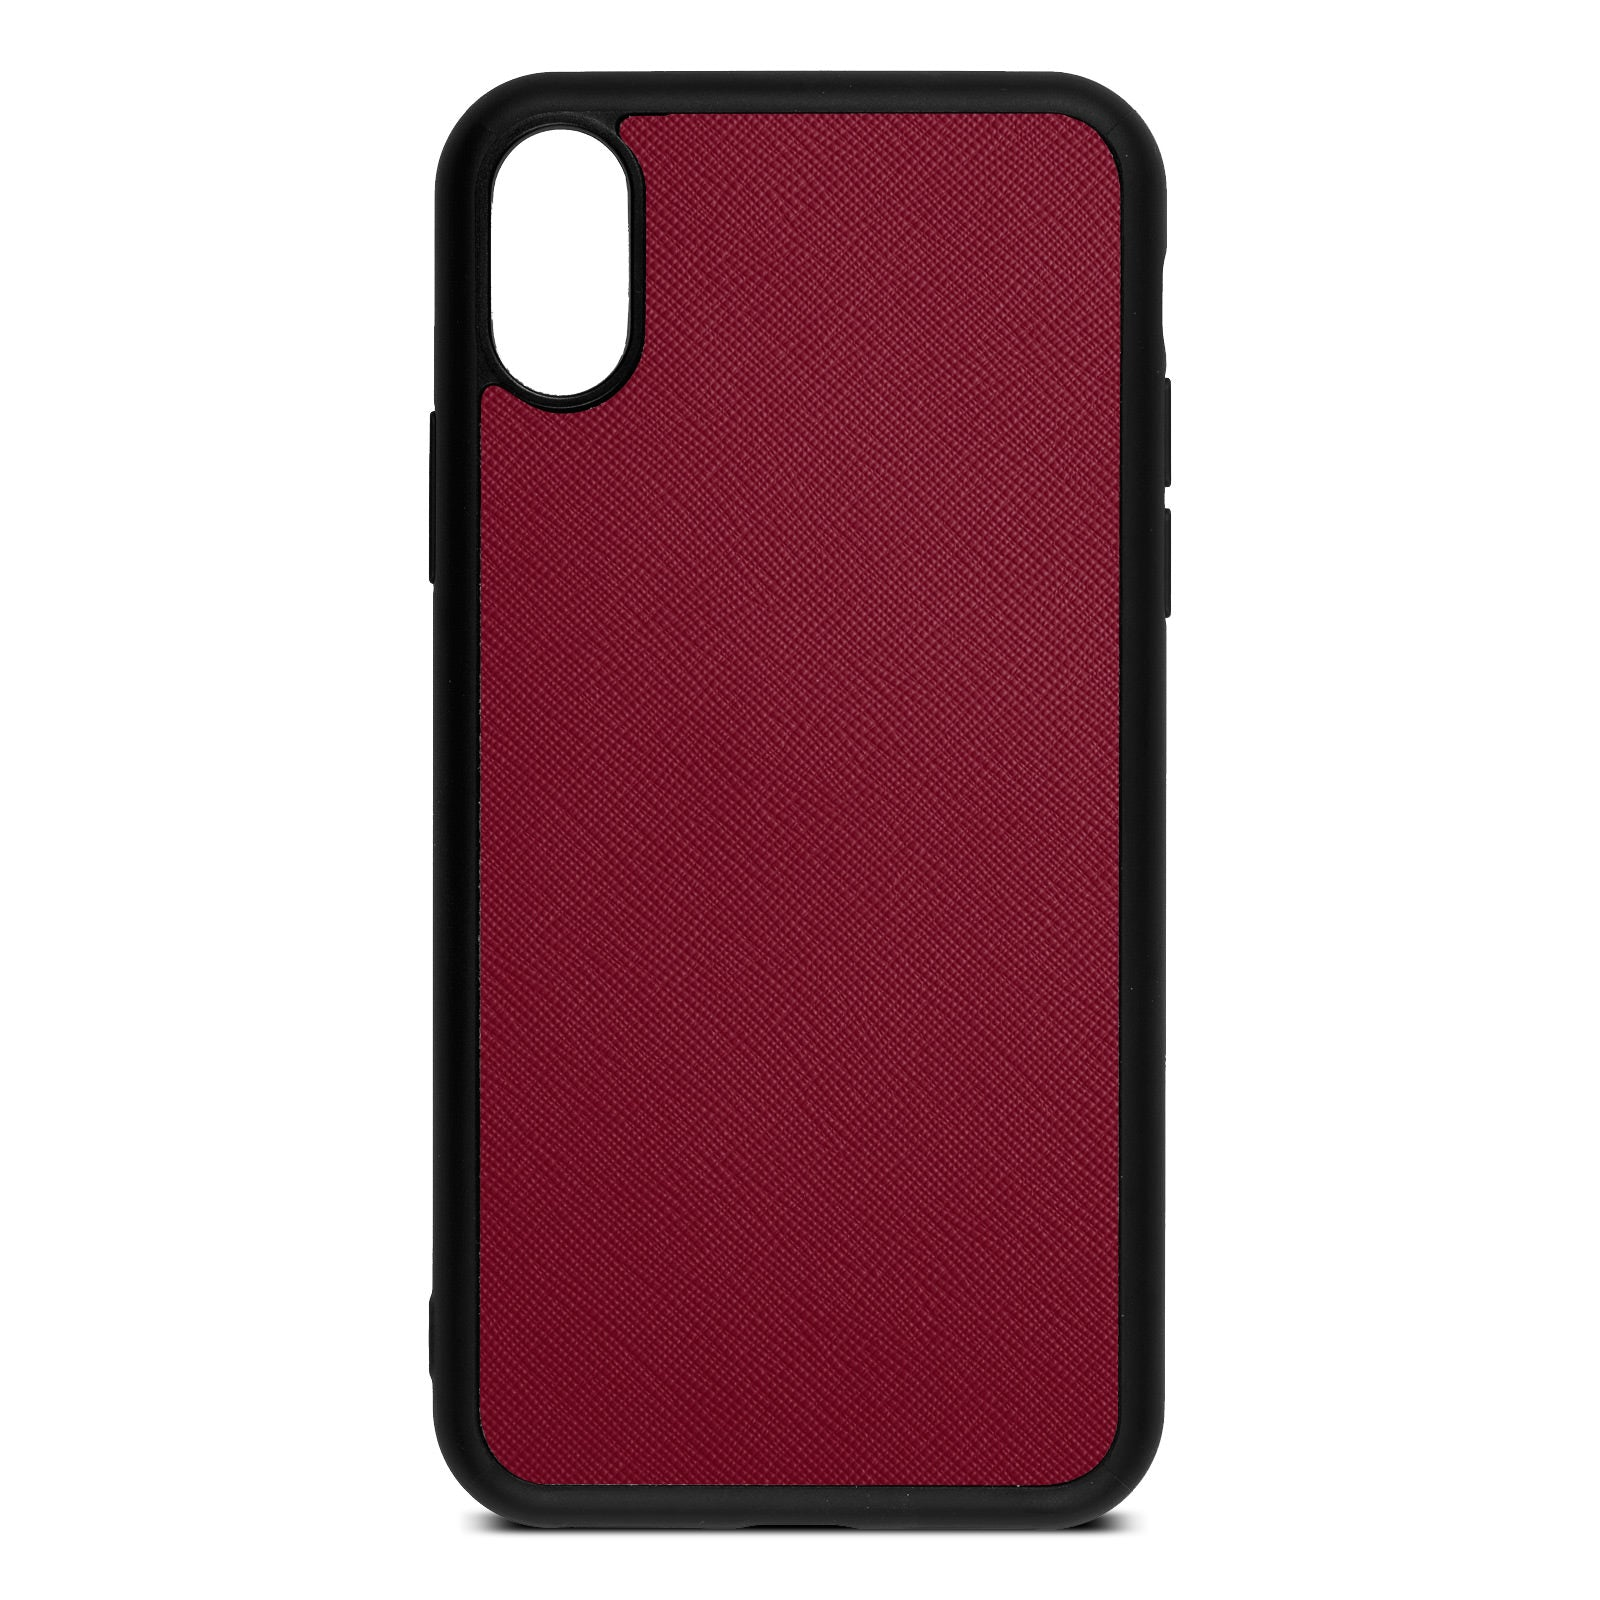 Blank Personalised Dark Red Saffiano Leather iPhone XS Case